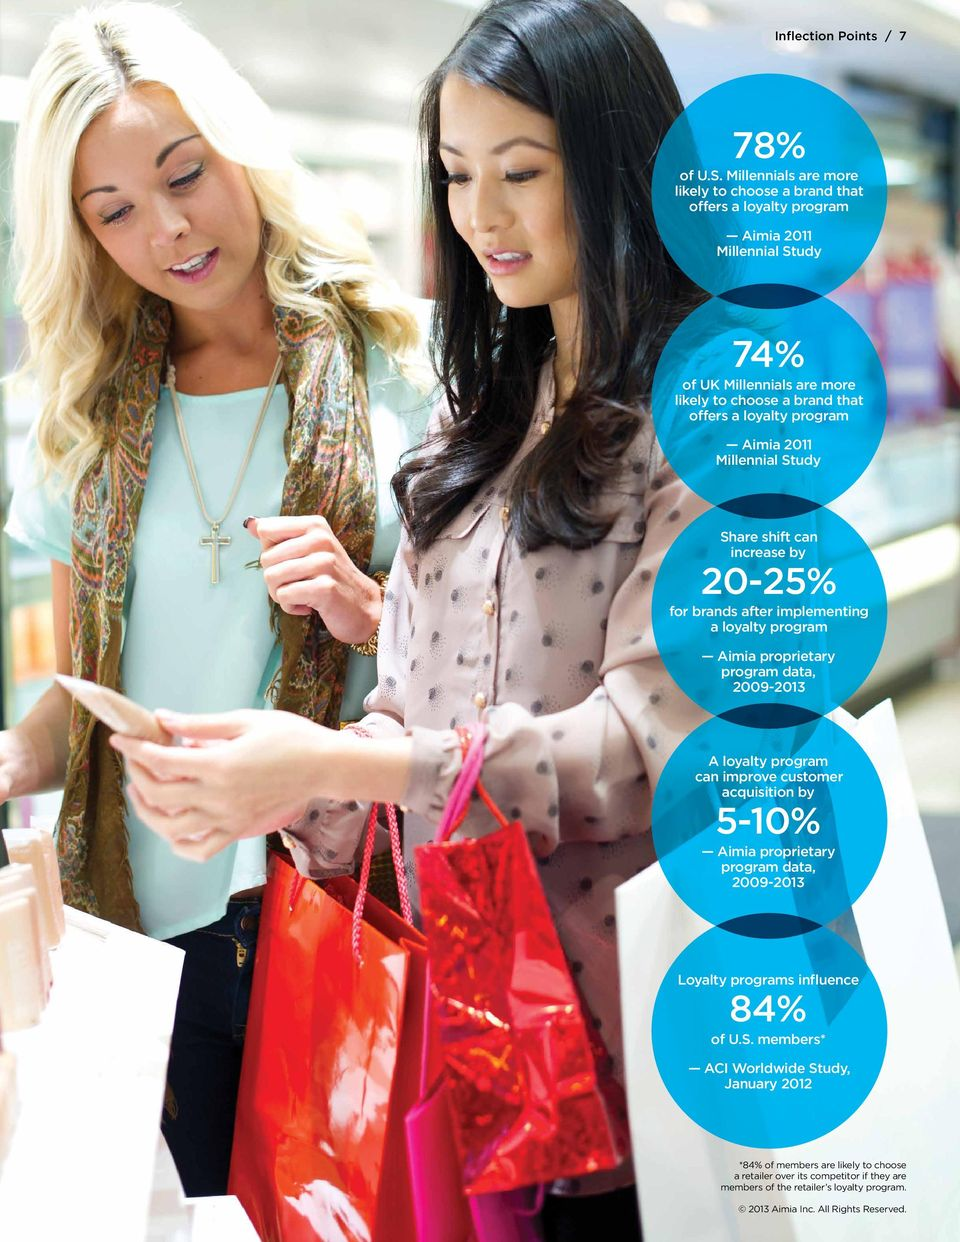 offers a loyalty program Aimia 2011 Millennial Study Share shift can increase by 20-25% for brands after implementing a loyalty program Aimia proprietary program data,